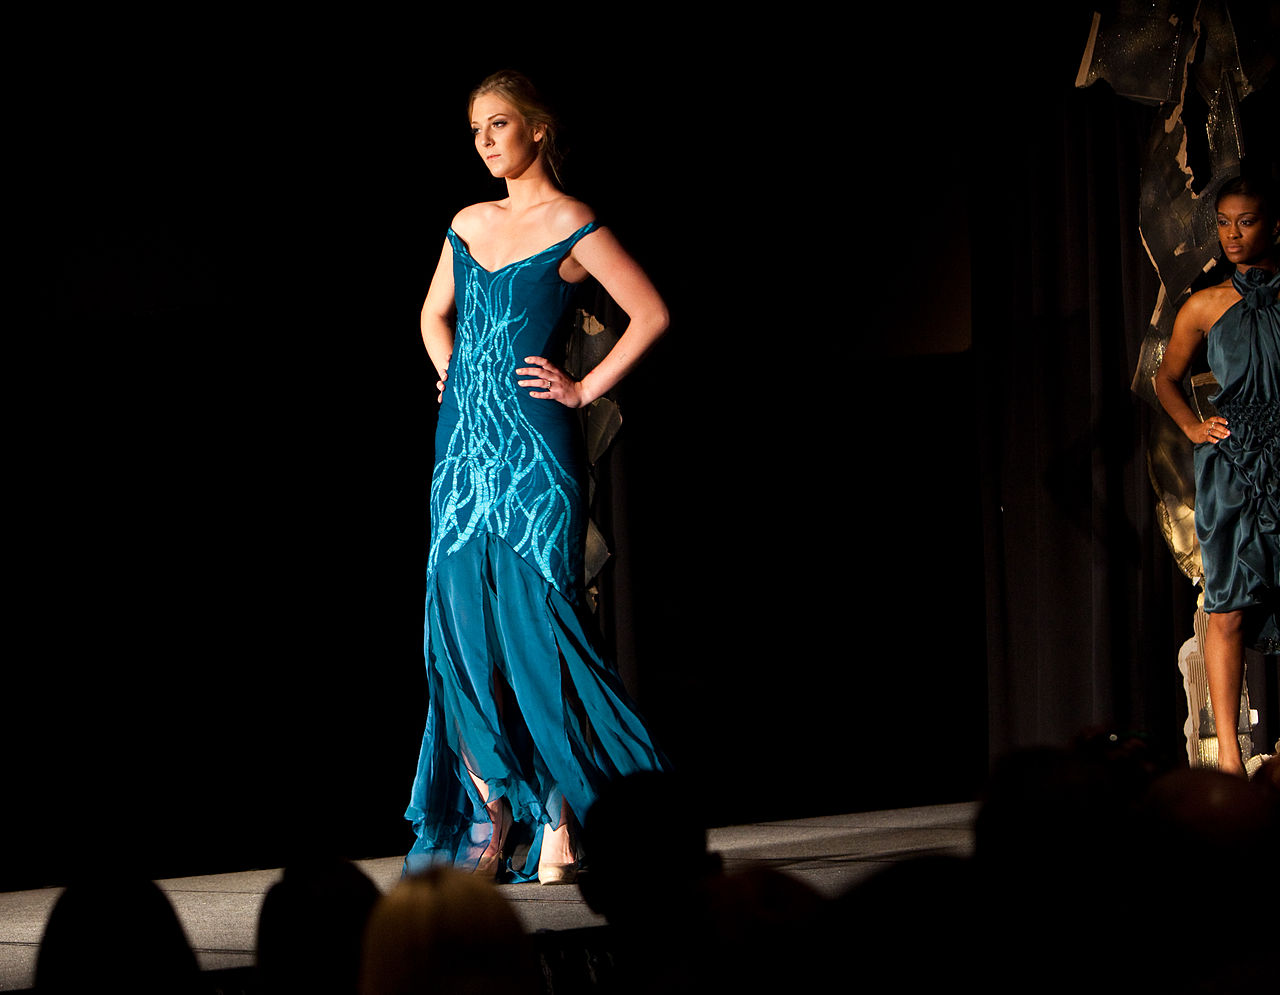 Elements_Fashion_Show_at_College_of_DuPage_2015_44_(17495819336)